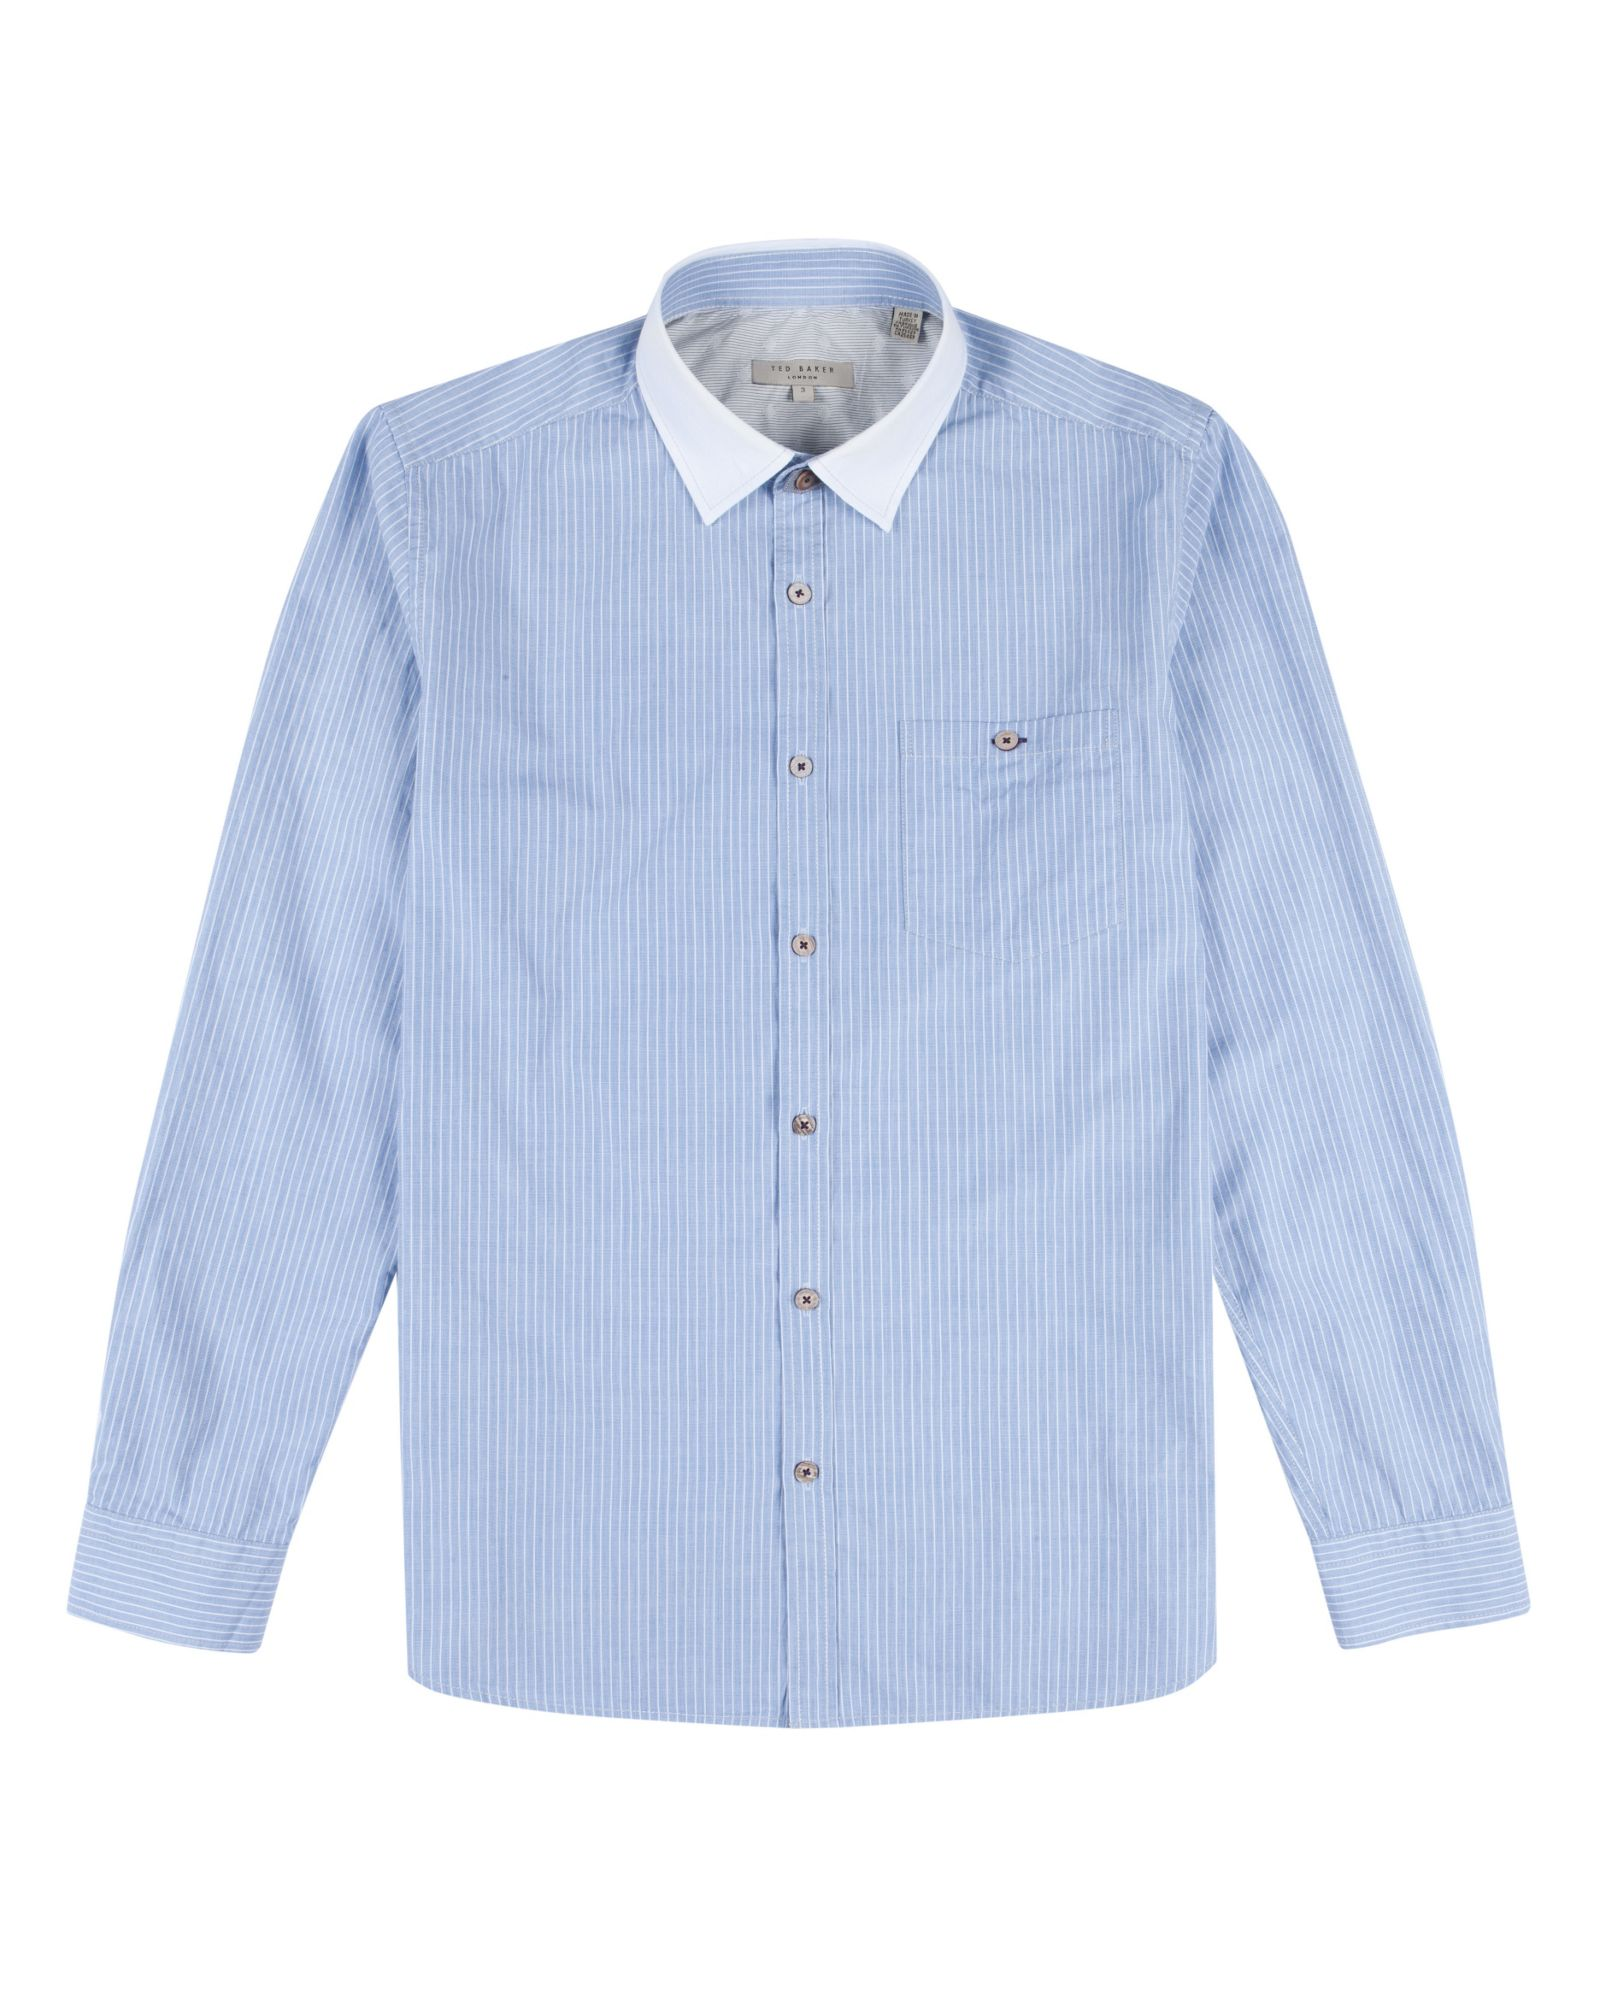 Ted baker brinza laundered striped shirt in blue for men for Ted baker blue shirt